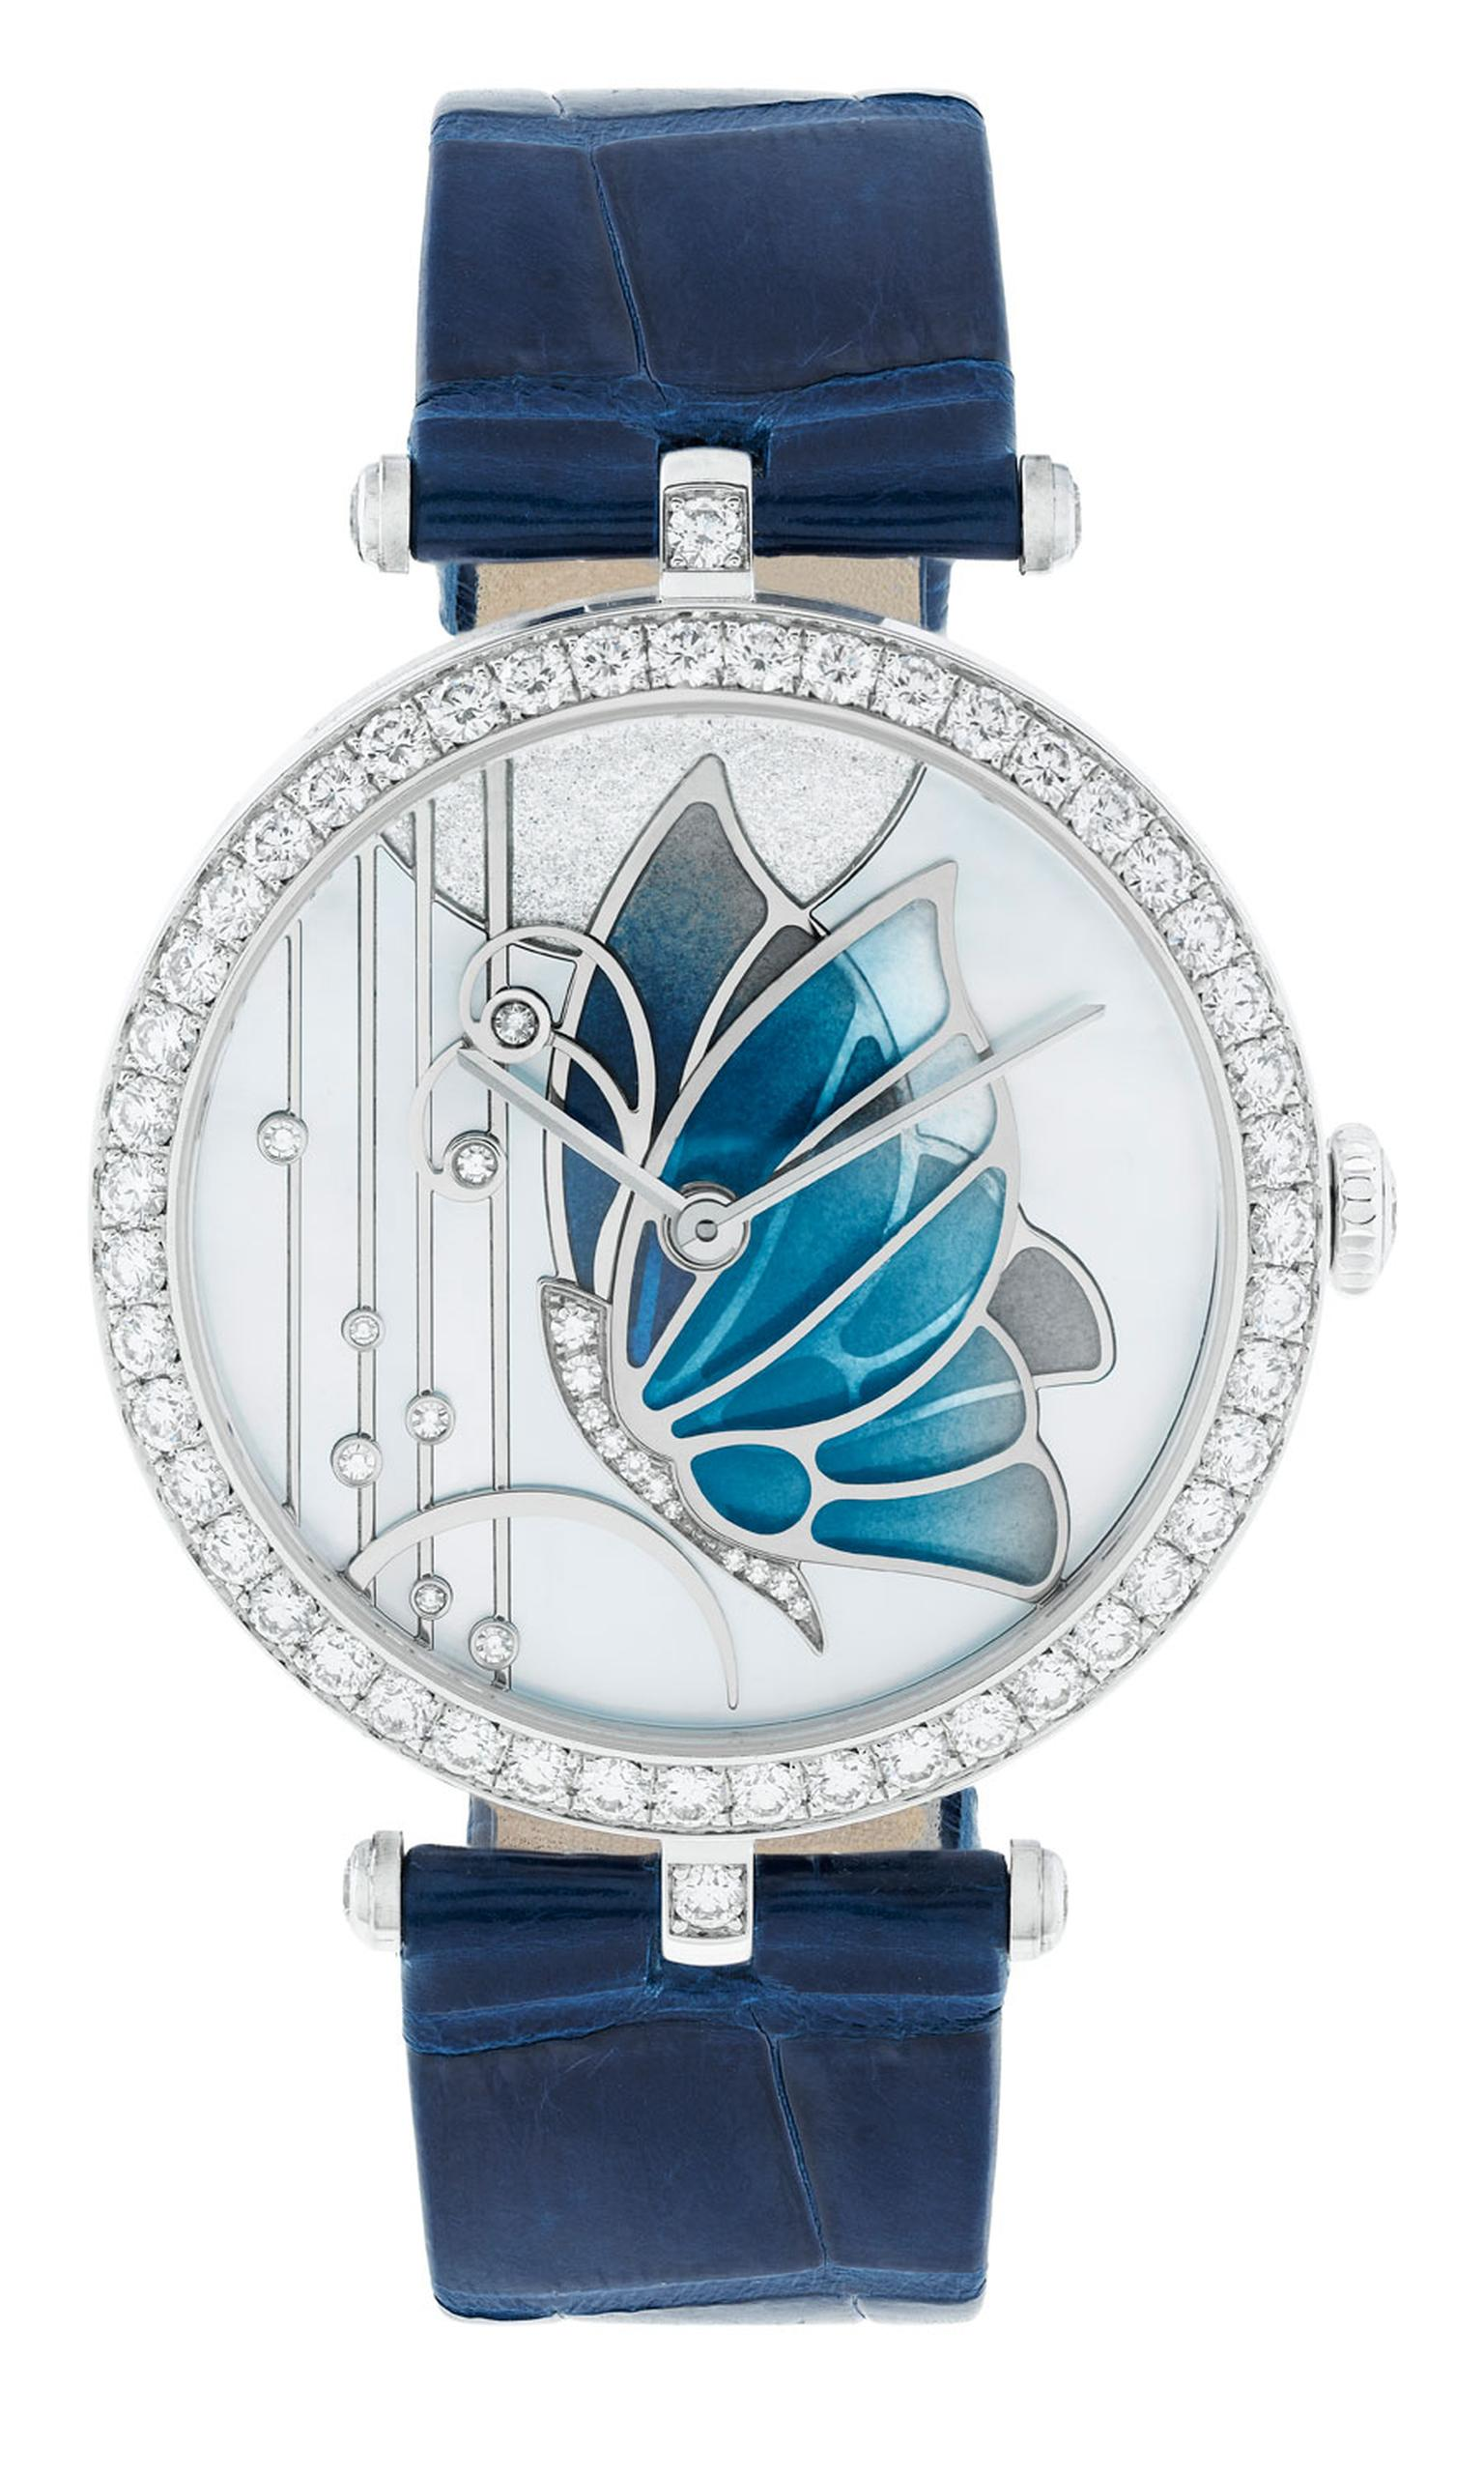 Van Cleef & Arpels 'Lady Arpels Papillon Bleu Nuit' in white gold case